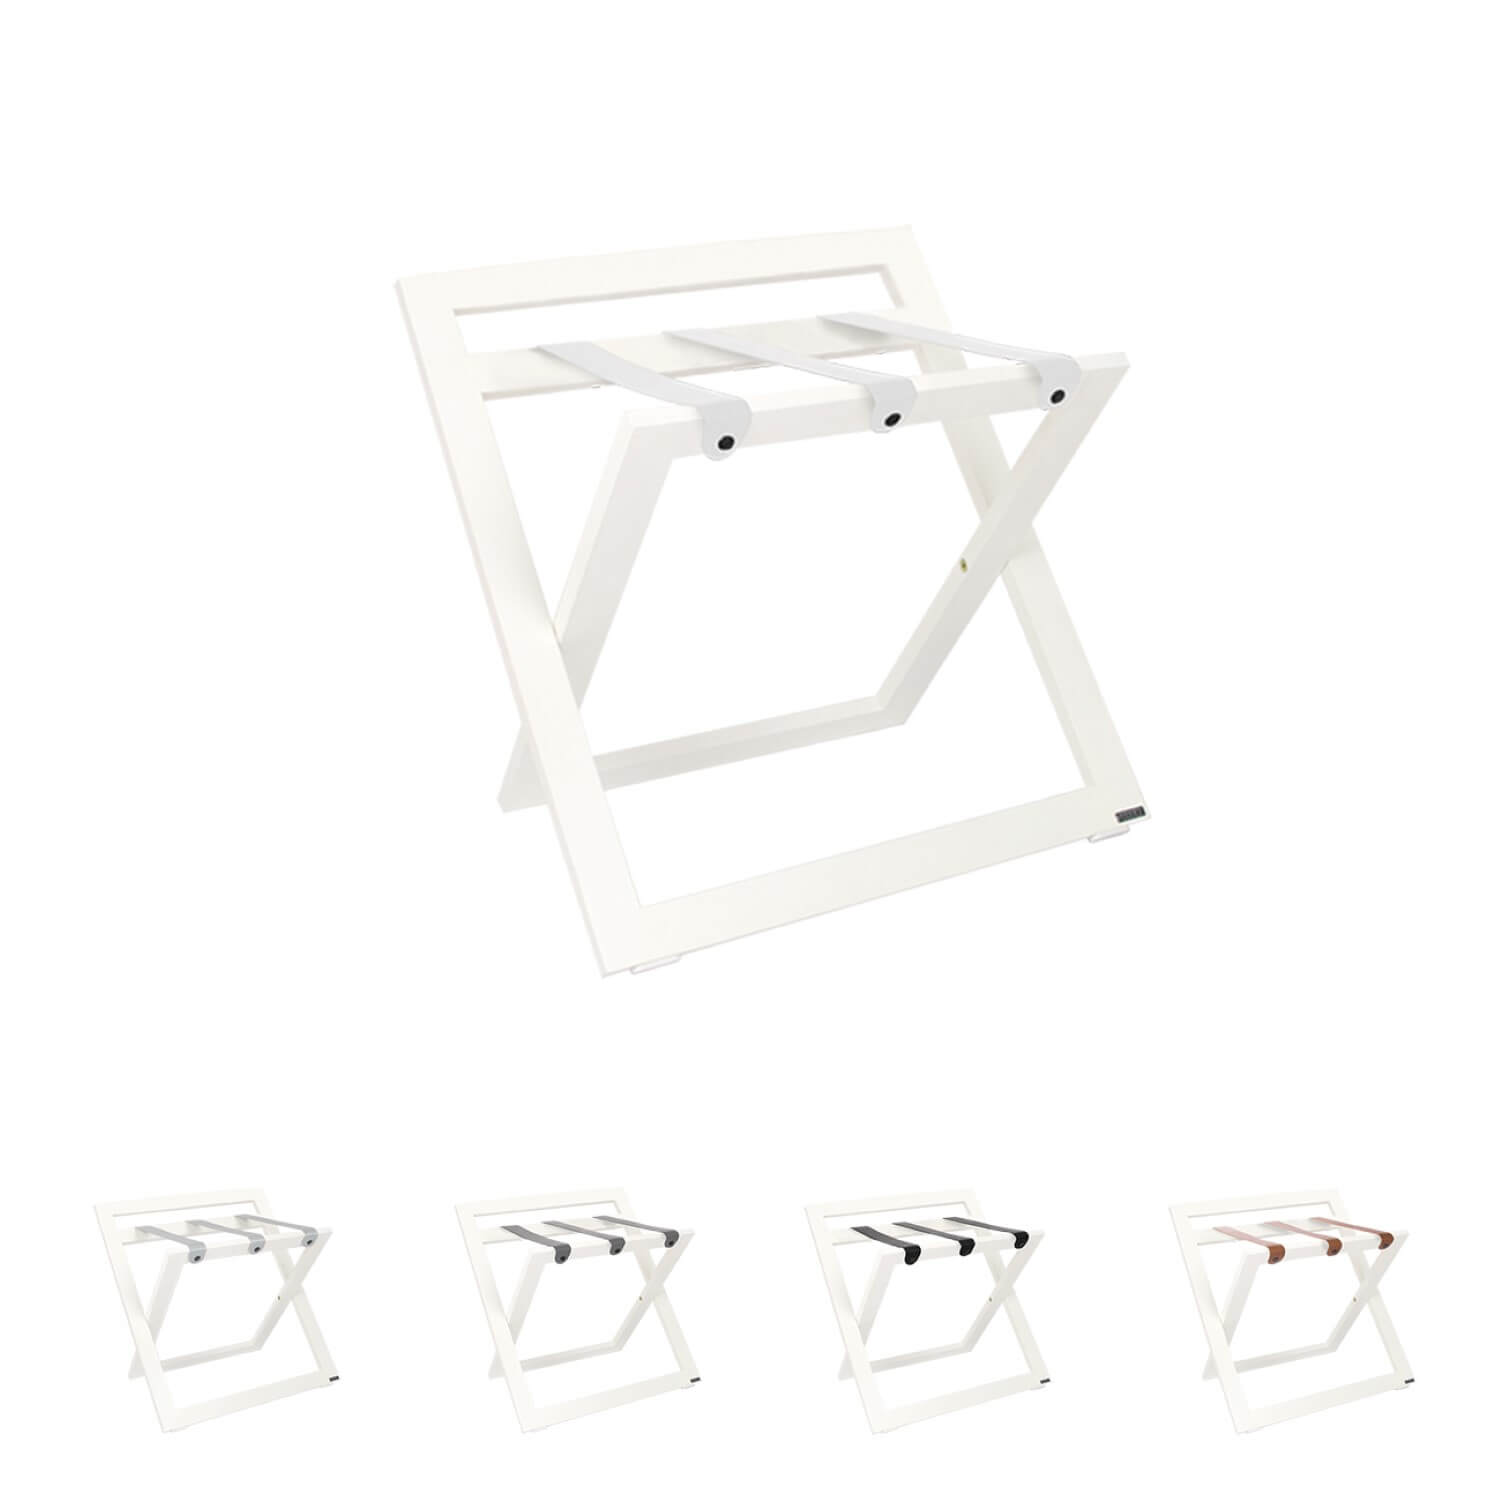 White luggage stand for hotels